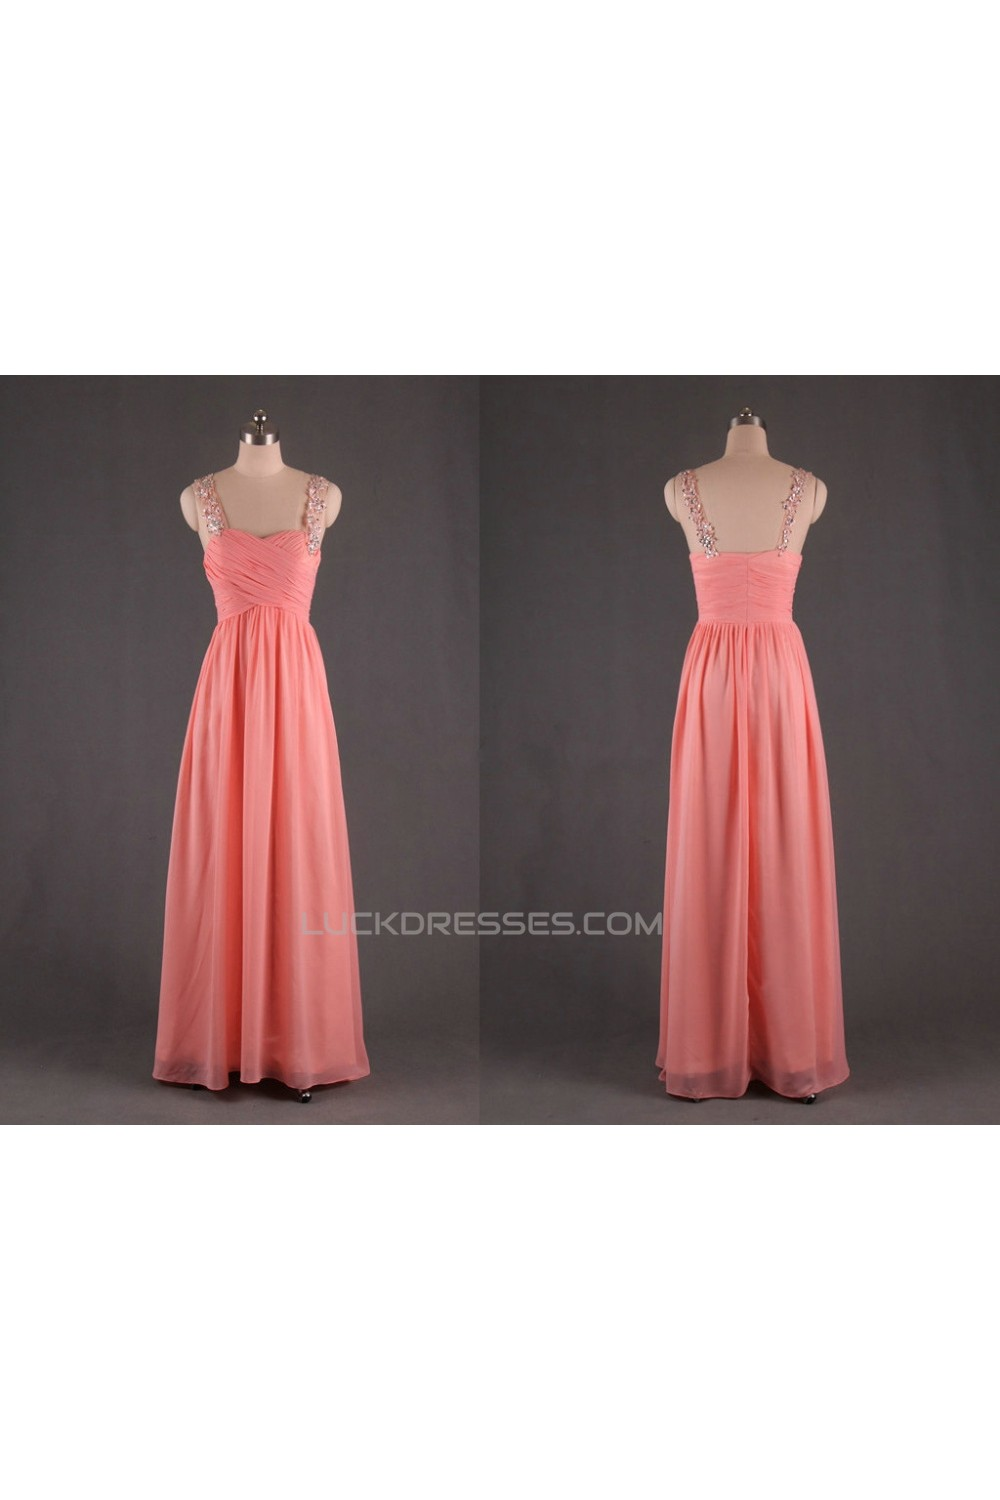 5728d95f00 A-Line Straps Sleeveless Beaded Long Pink Chiffon Prom Evening Formal  Dresses ED011187